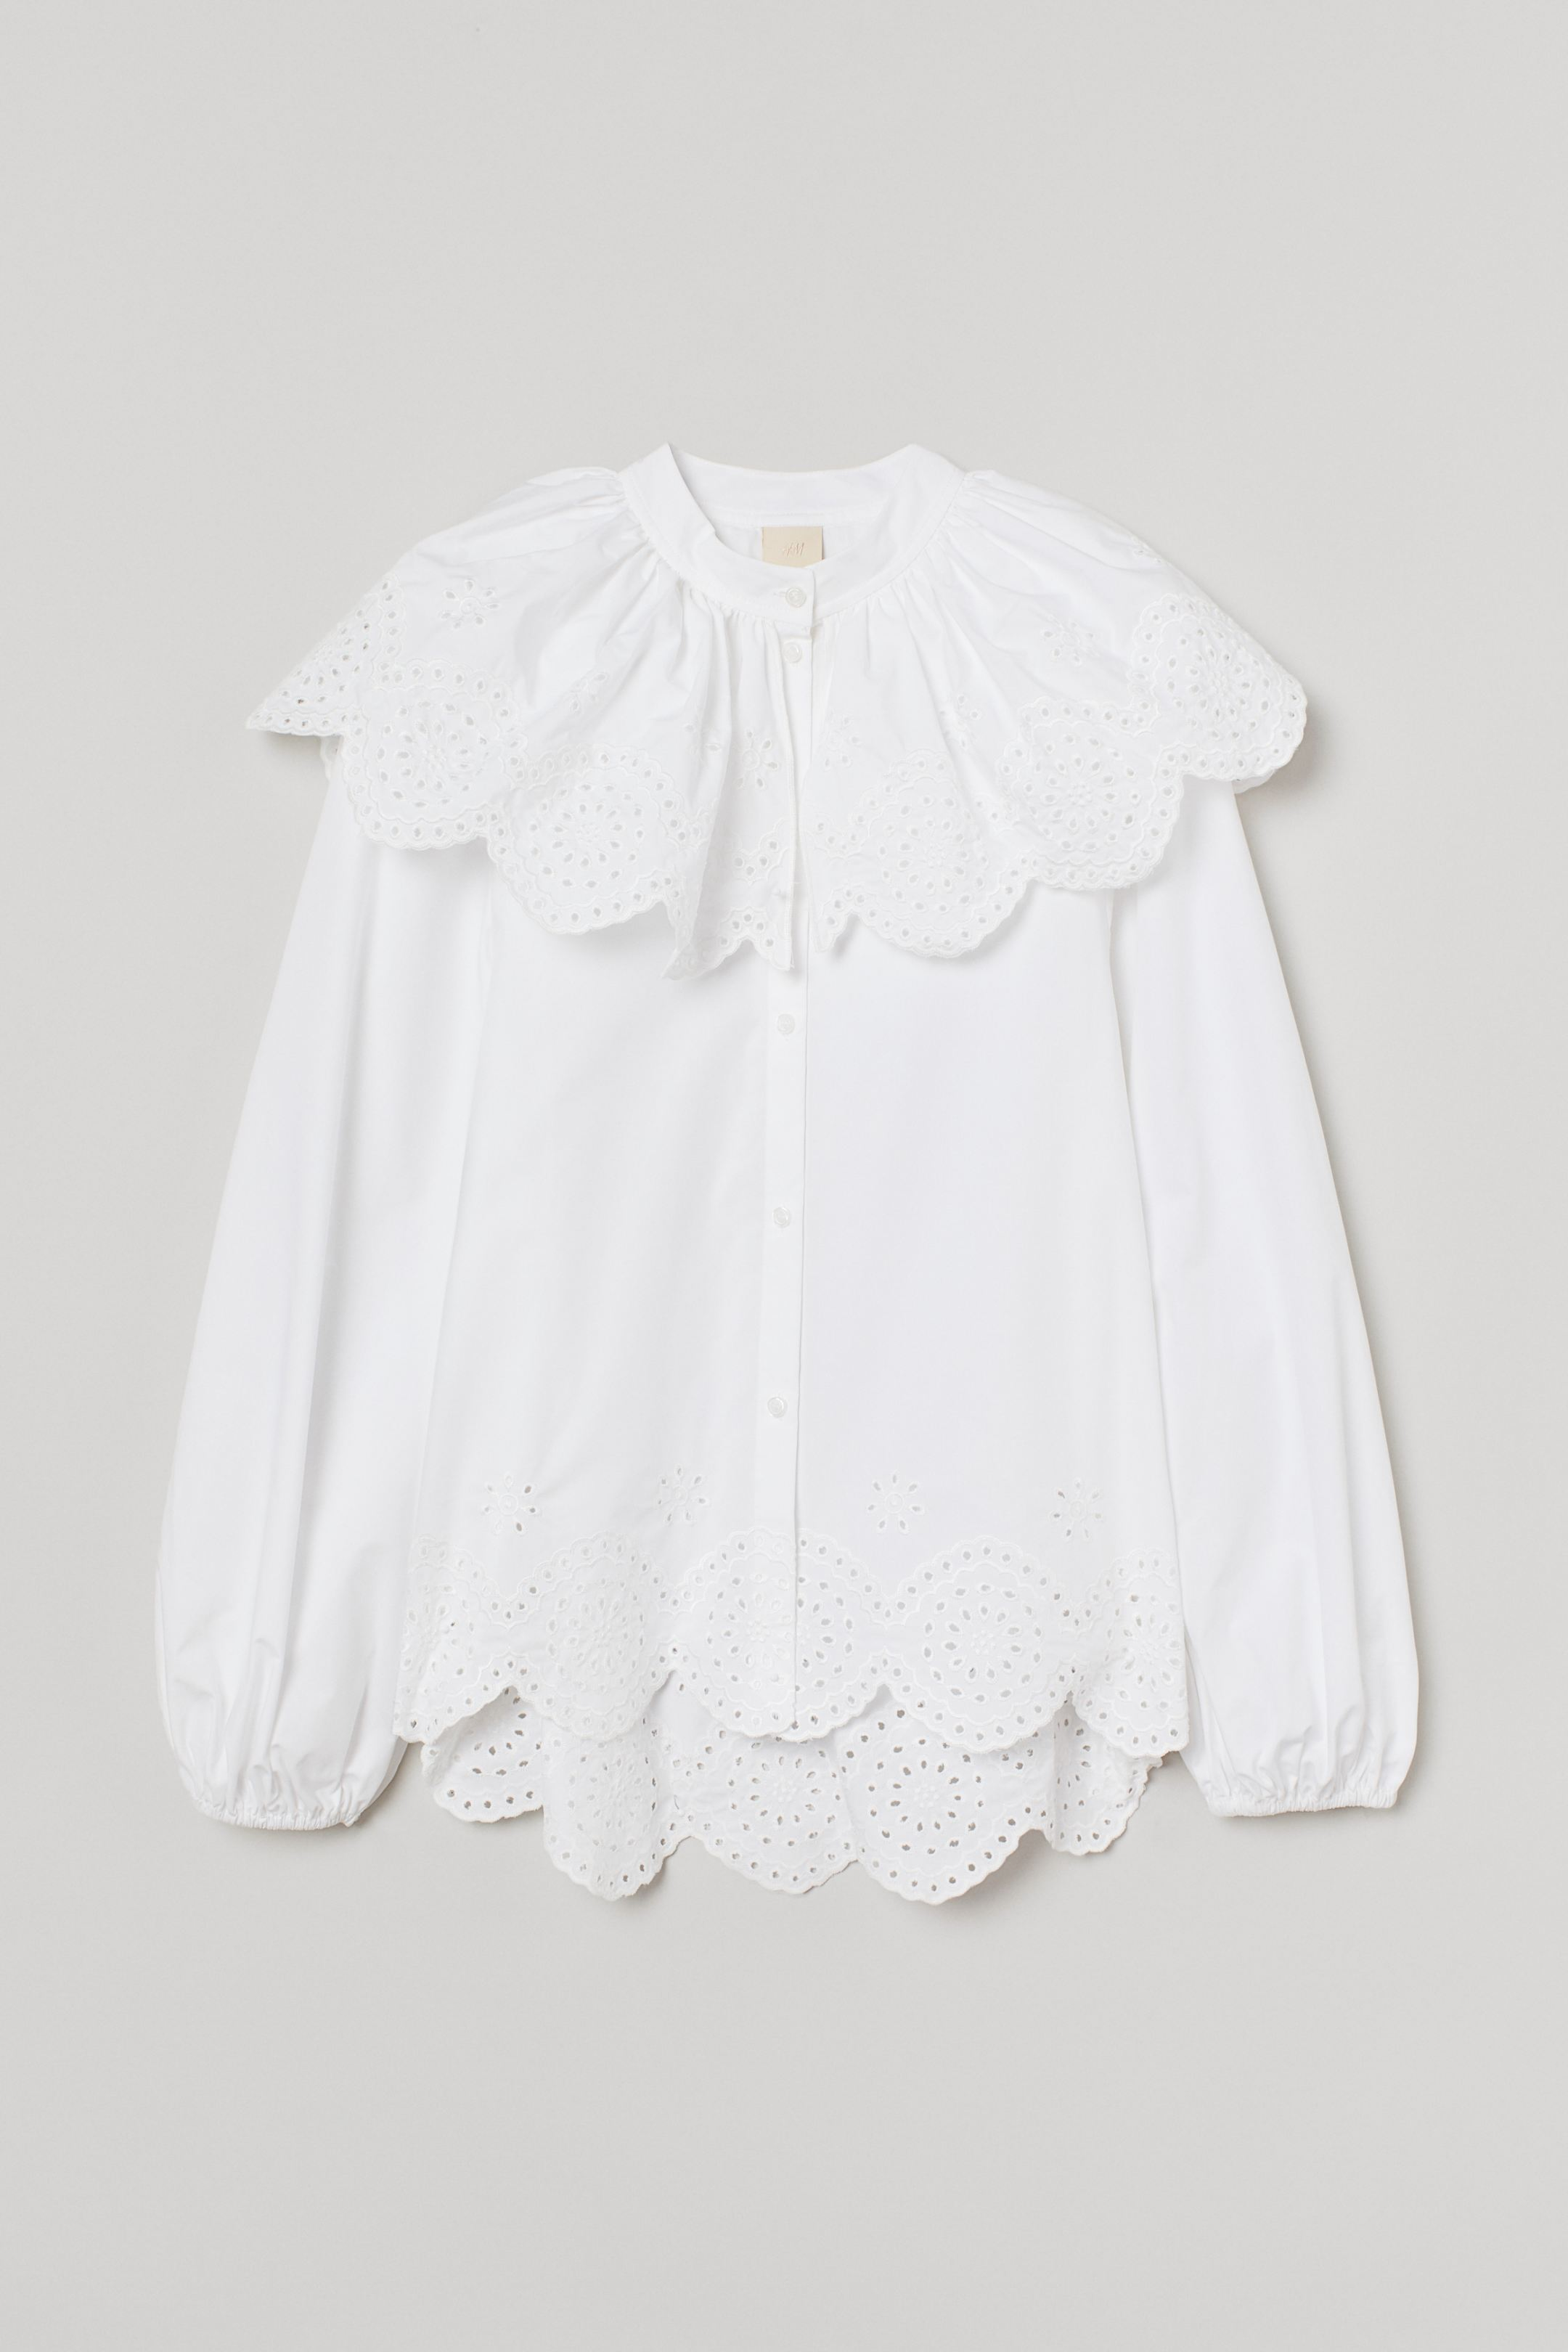 Wide cotton blouse with English embroidery, short turtleneck with semi-loose layer covering the shoulders. Buttons in front, long balloon sleeves with fine elastic lining on the cuffs and scalloped hem.